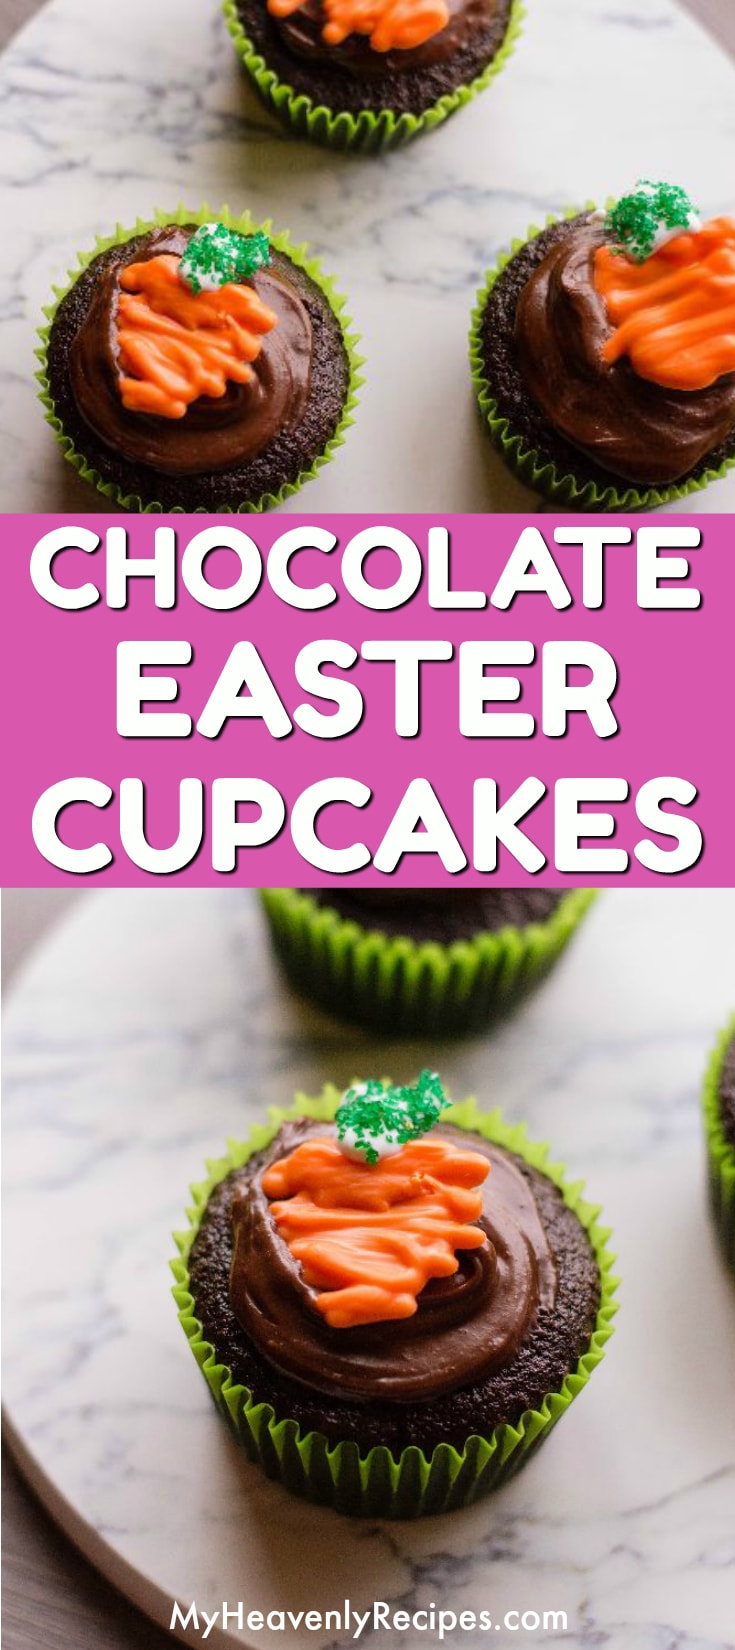 You will LOVE these adorable Chocolate Easter Cupcakes with Carrots! This Easter dessert recipe is topped with chocolate icing and a candy in the shape of a carrot on top of a chocolate cupcake. A fun Easter recipe for kids! #easter #eastercupcakes #easterrecipe #easterdessert